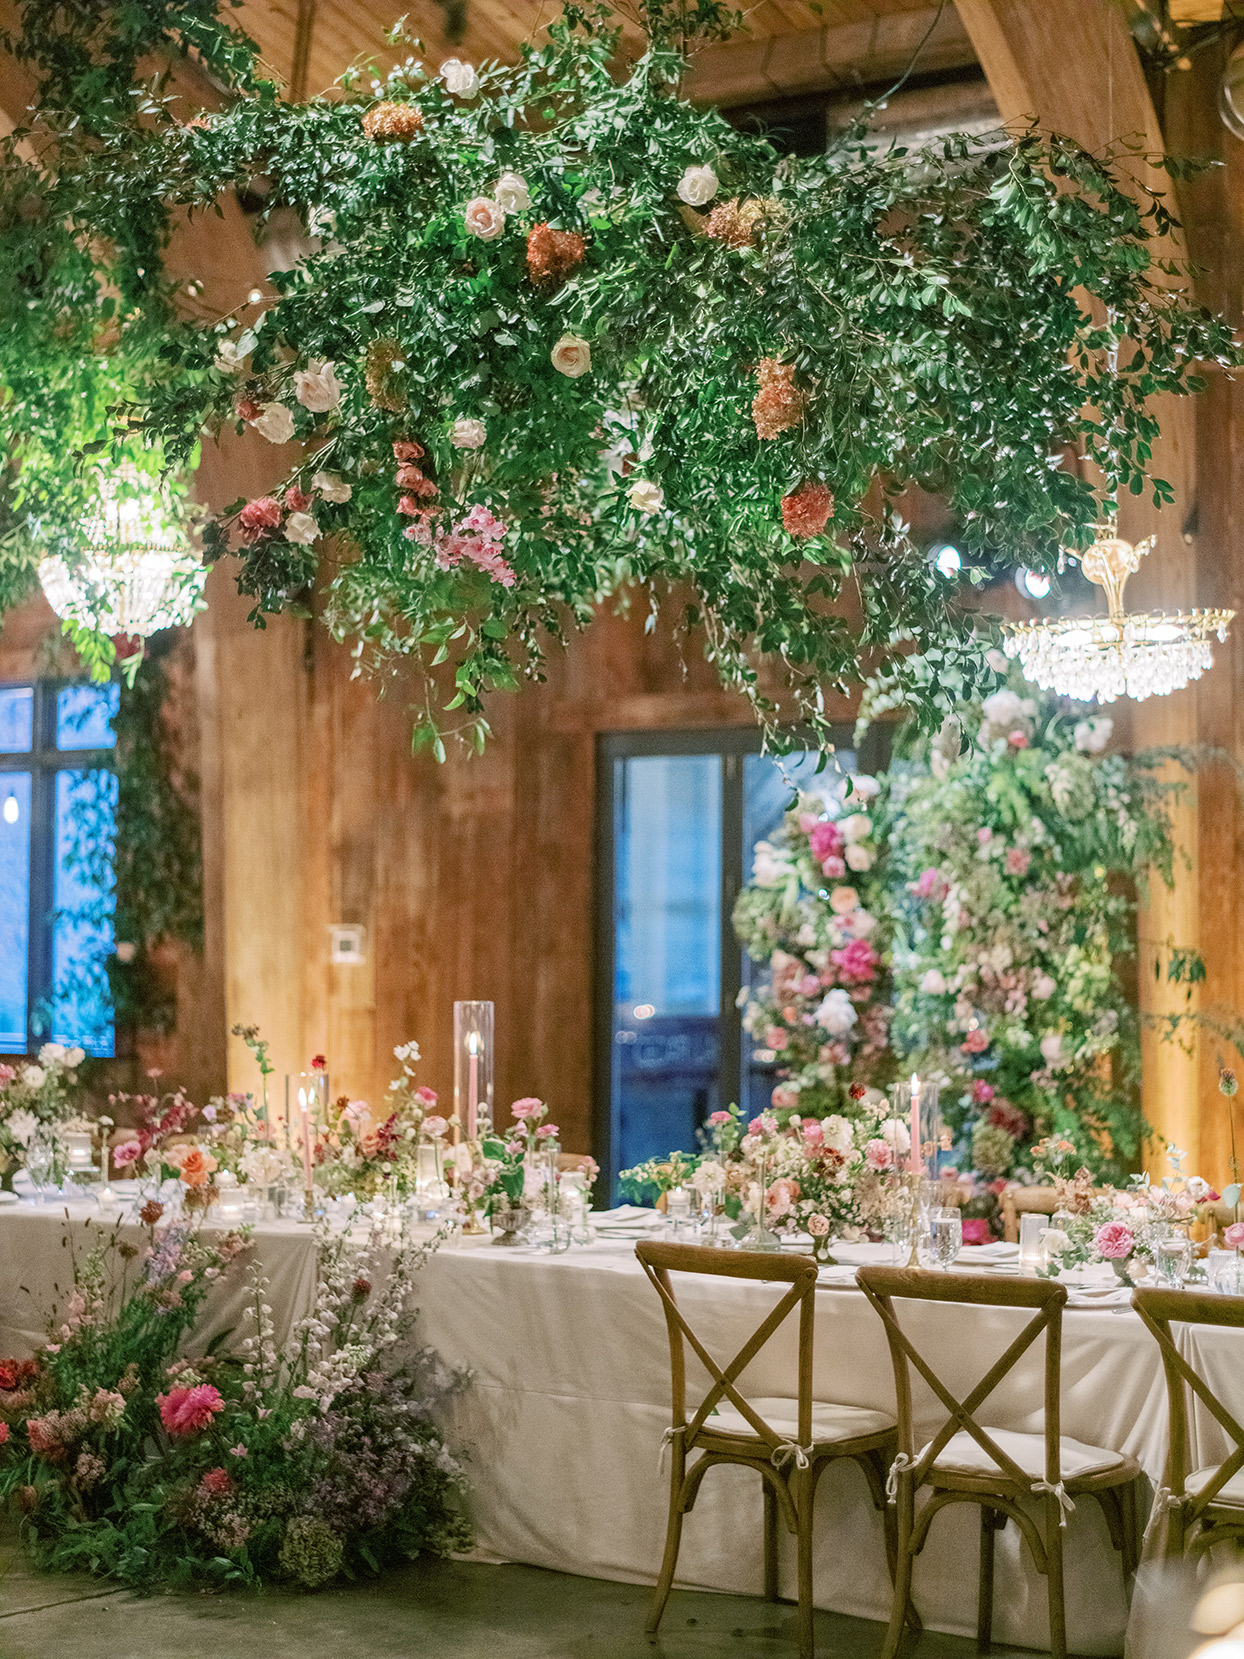 wedding reception long table with floral centerpiece, floor arrangements, and hanging installment